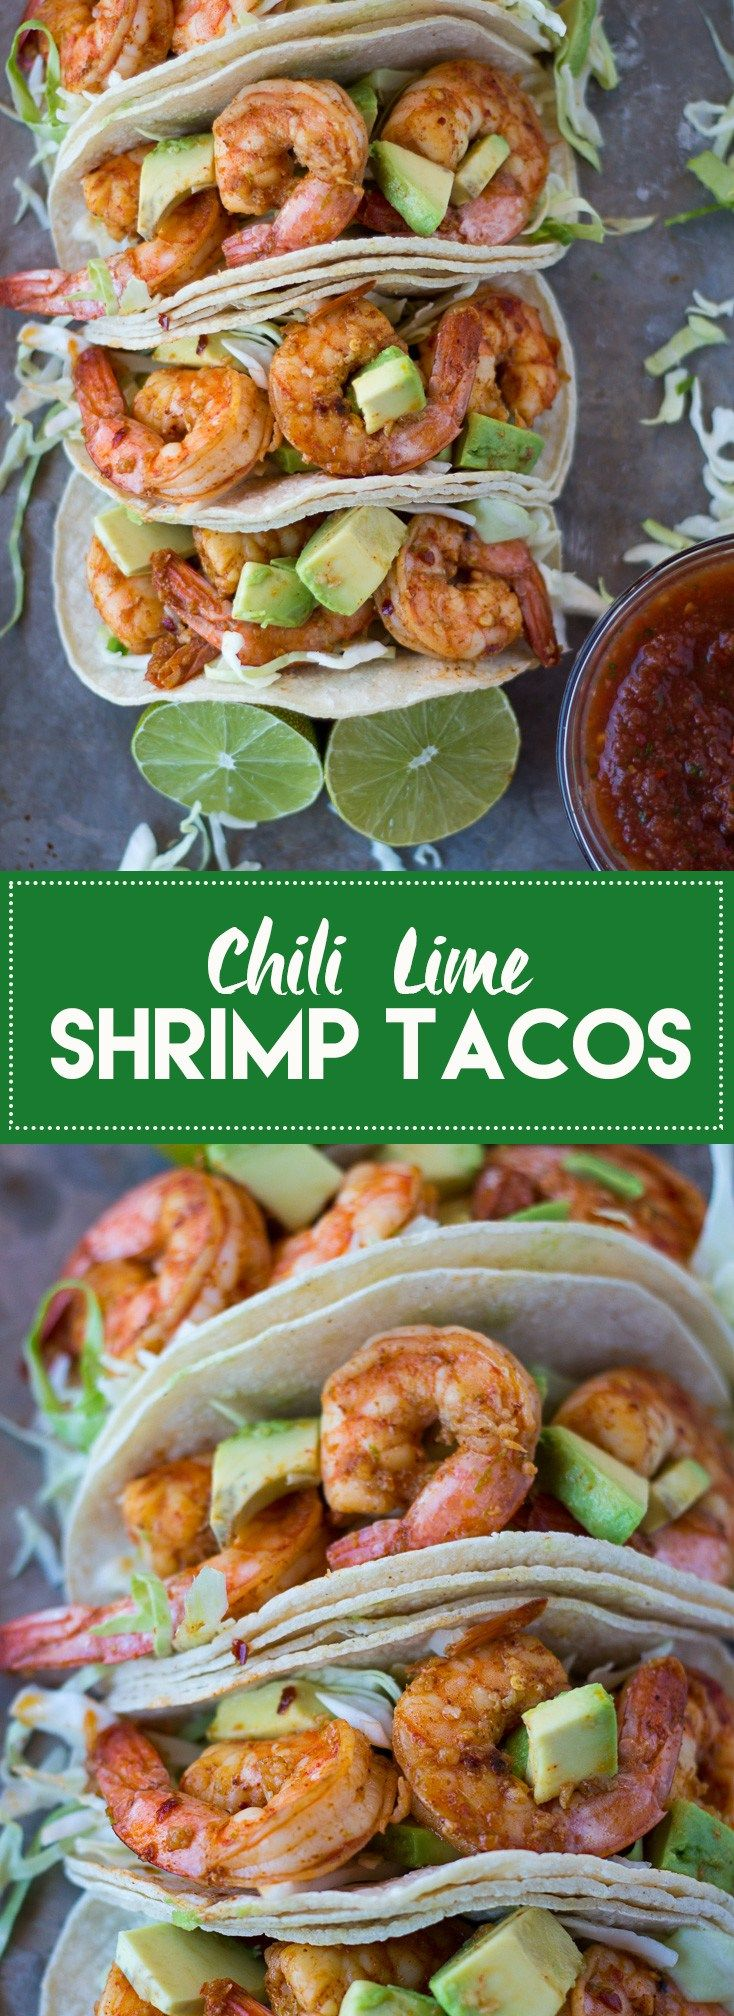 These chili lime shrimp tacos are super flavorful and take less than 30 minutes…